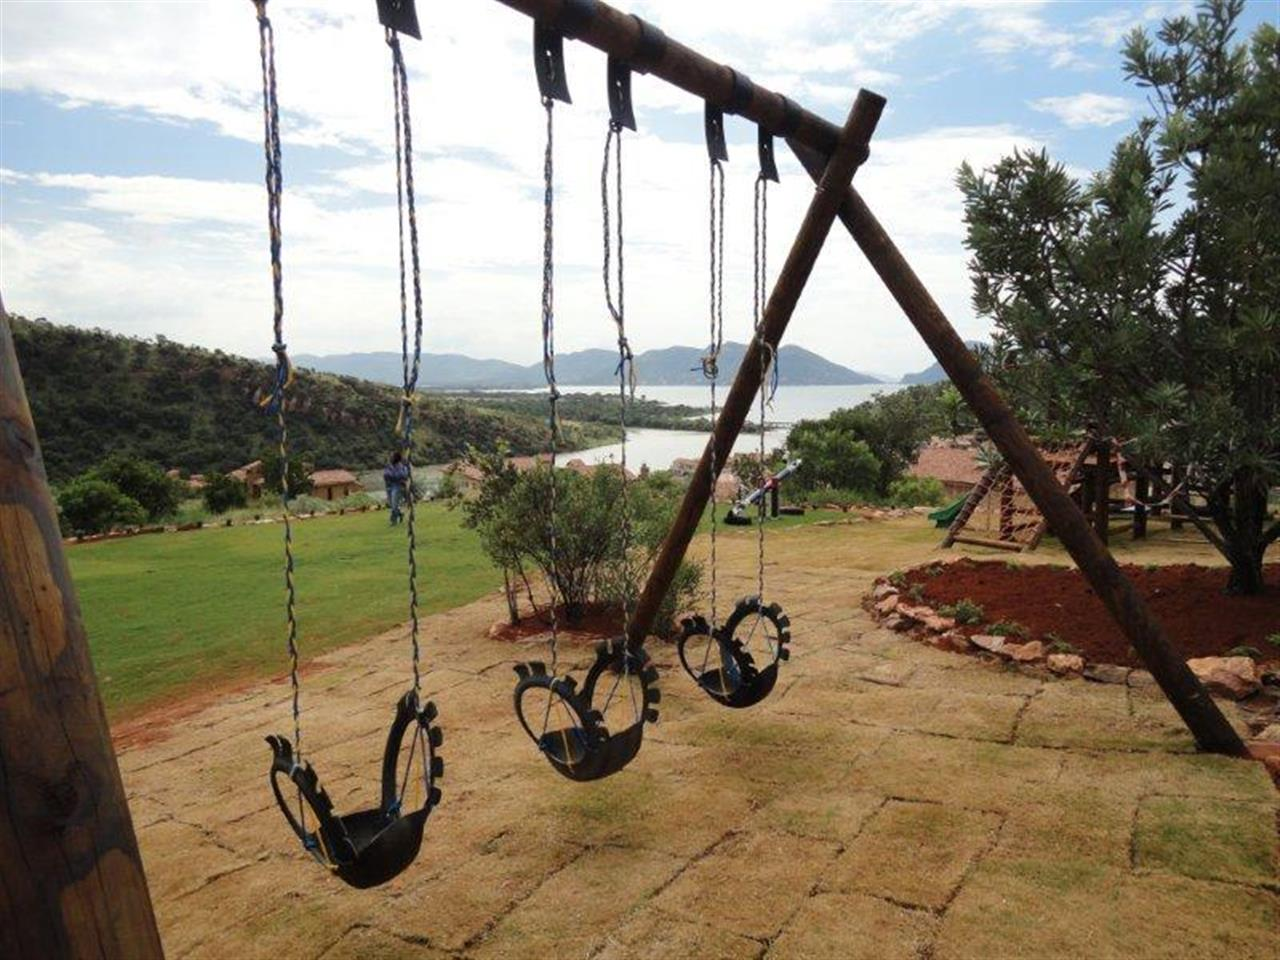 Playground in Estate d' Afrique, Hartbeespoort Dam, South Africa